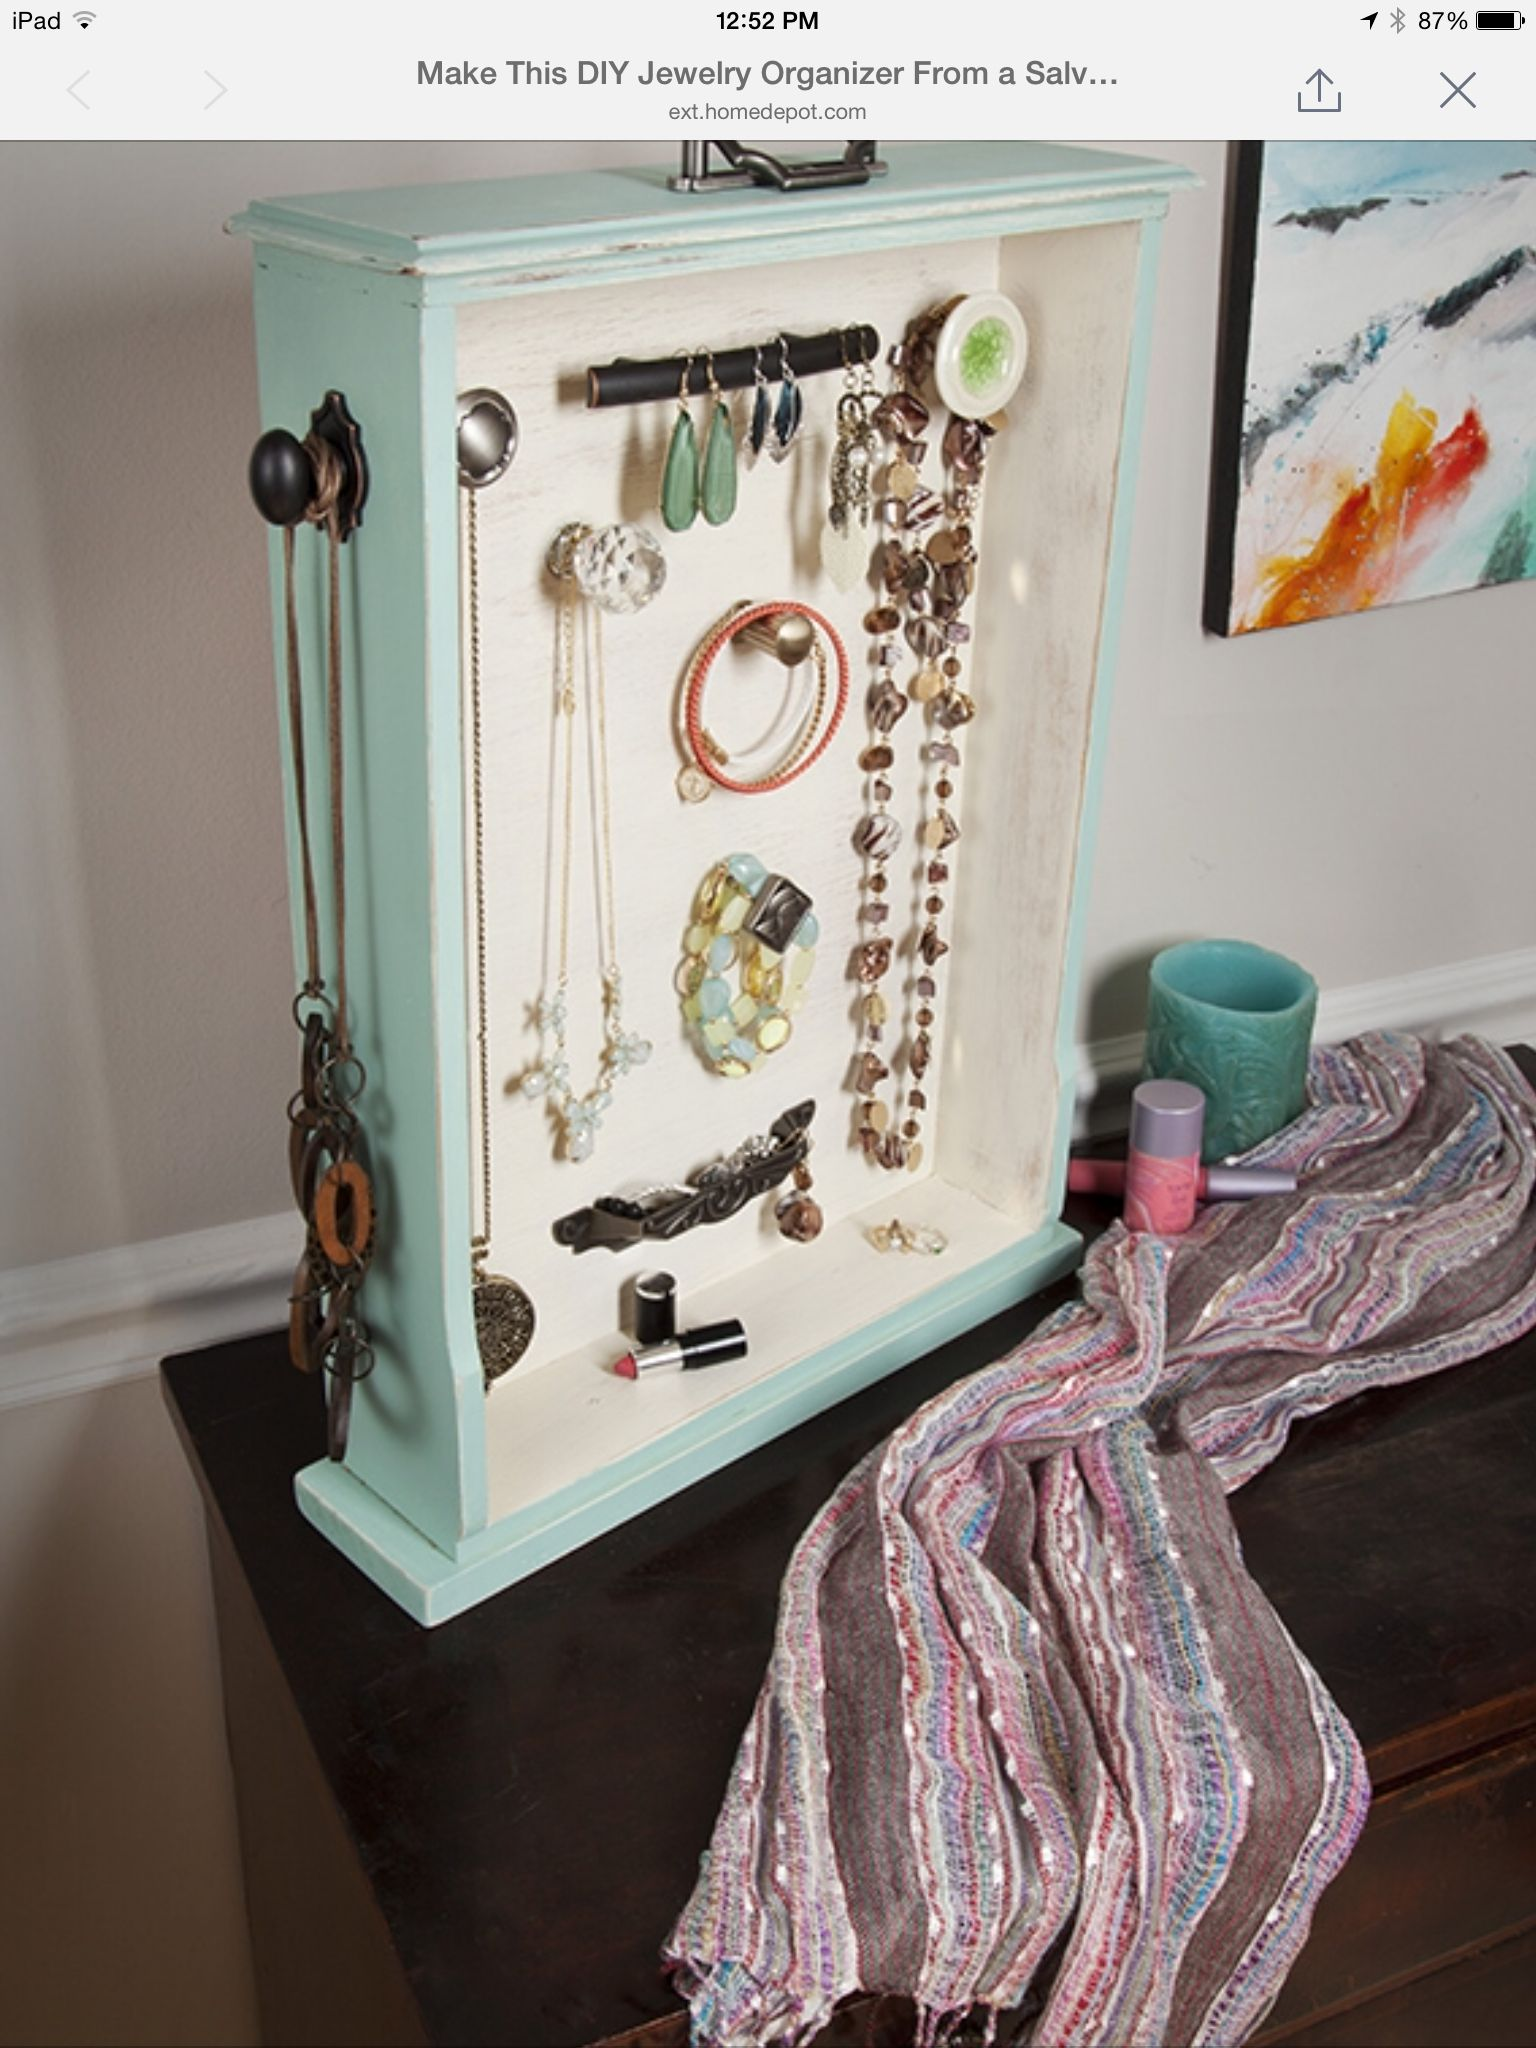 Jewalry organizer idea from Home Depot The Apron Blog